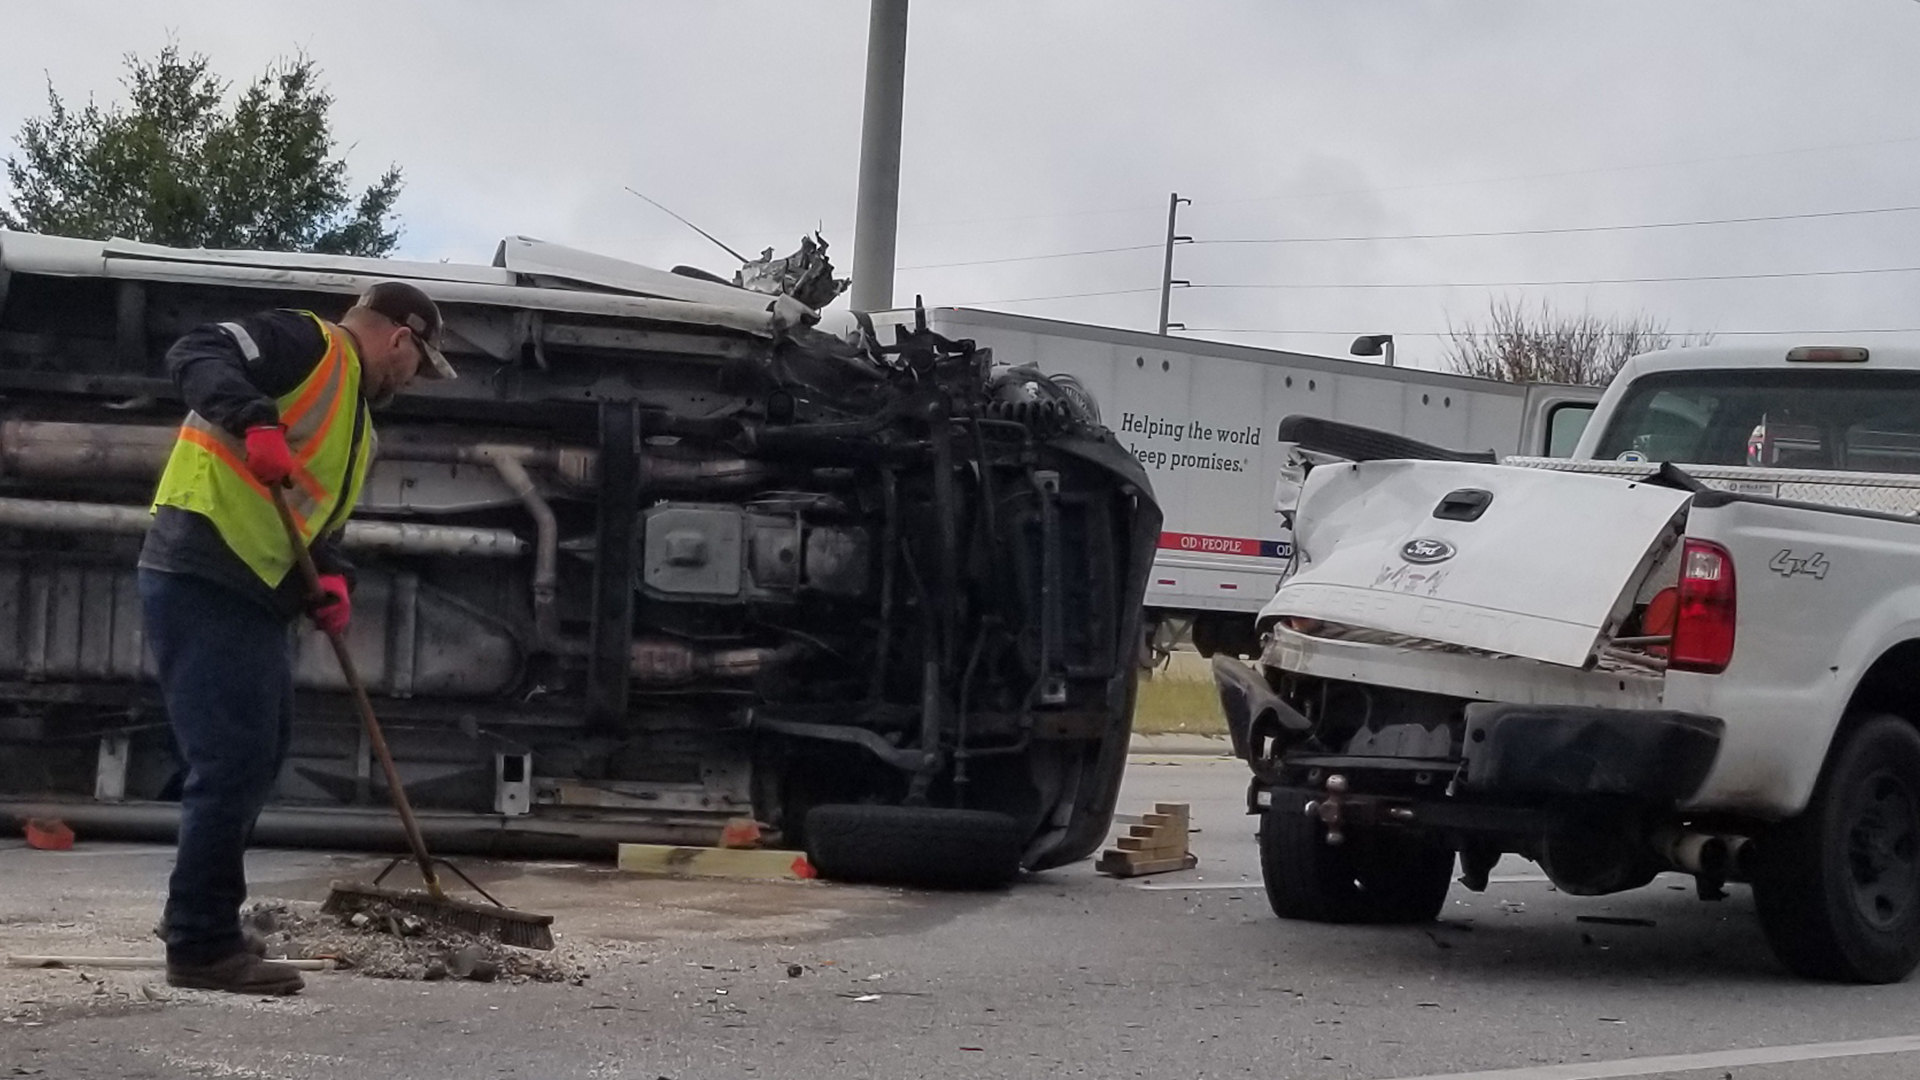 Rollover Accident on Hwy 50 Sends Three to Hospital - Clermont Report